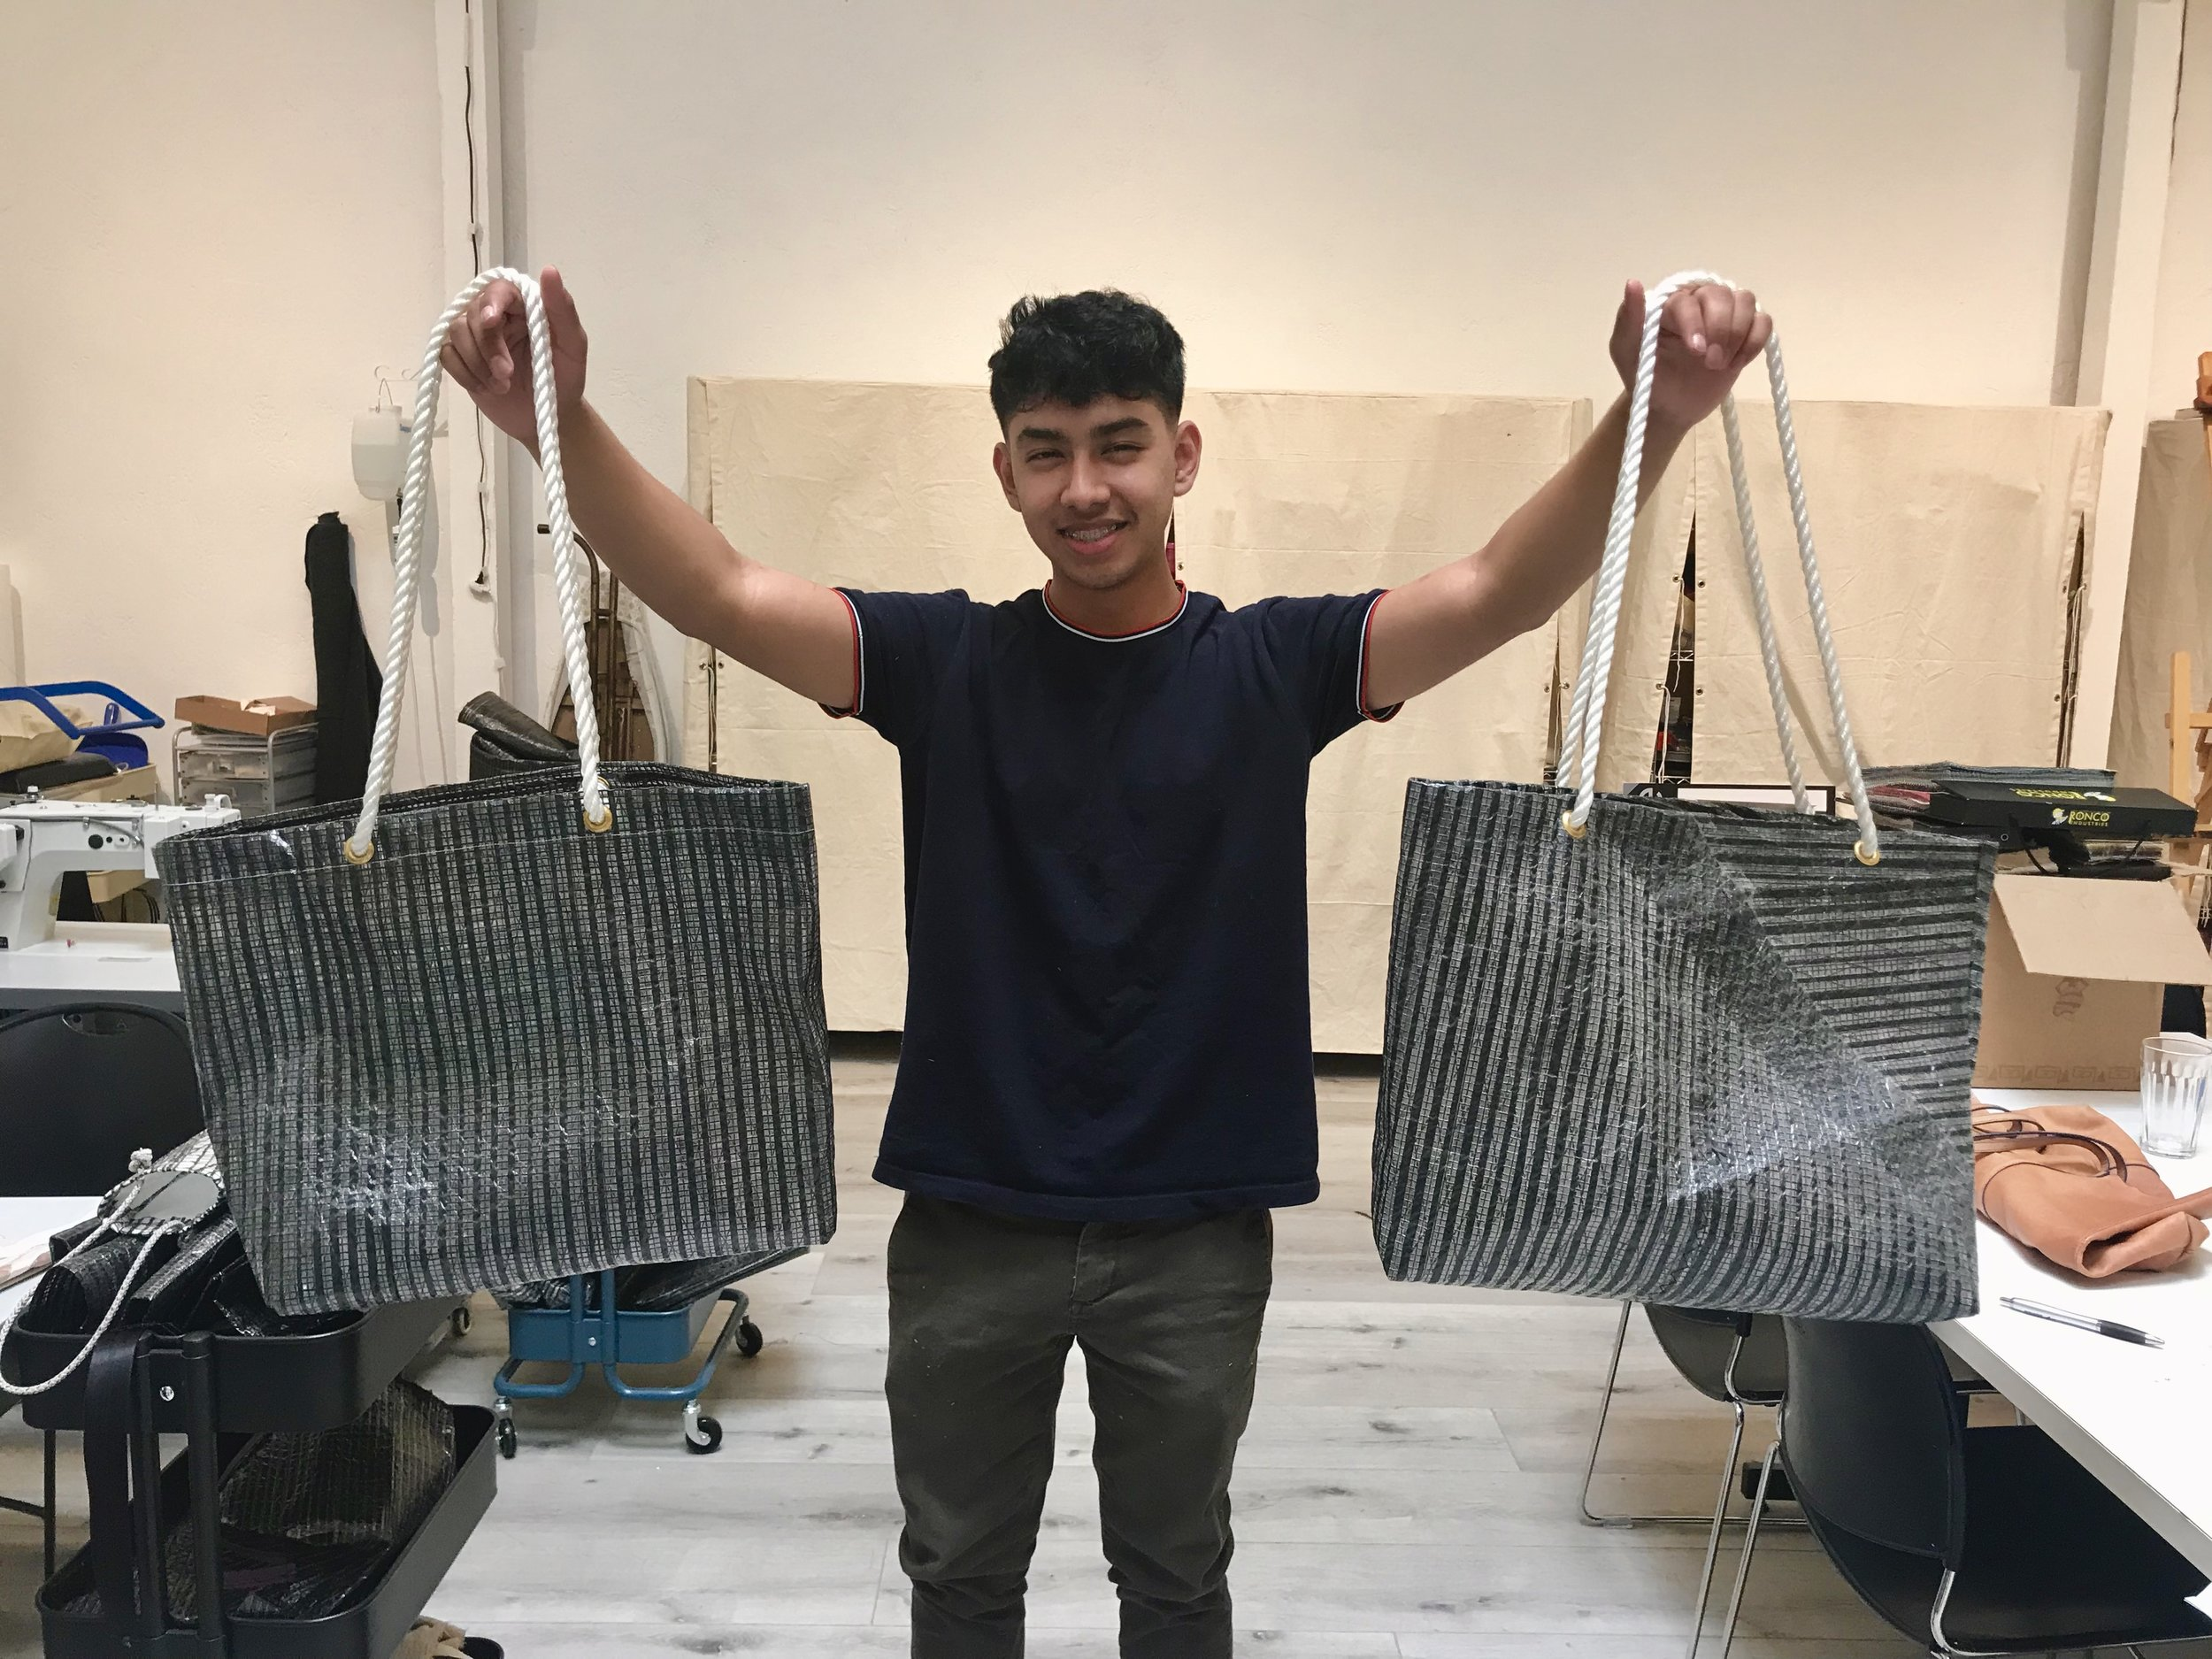 The  Pier Pressure Designs  Student-Led Business has new Anchor Totes (pictured) and coin purses for purchase!